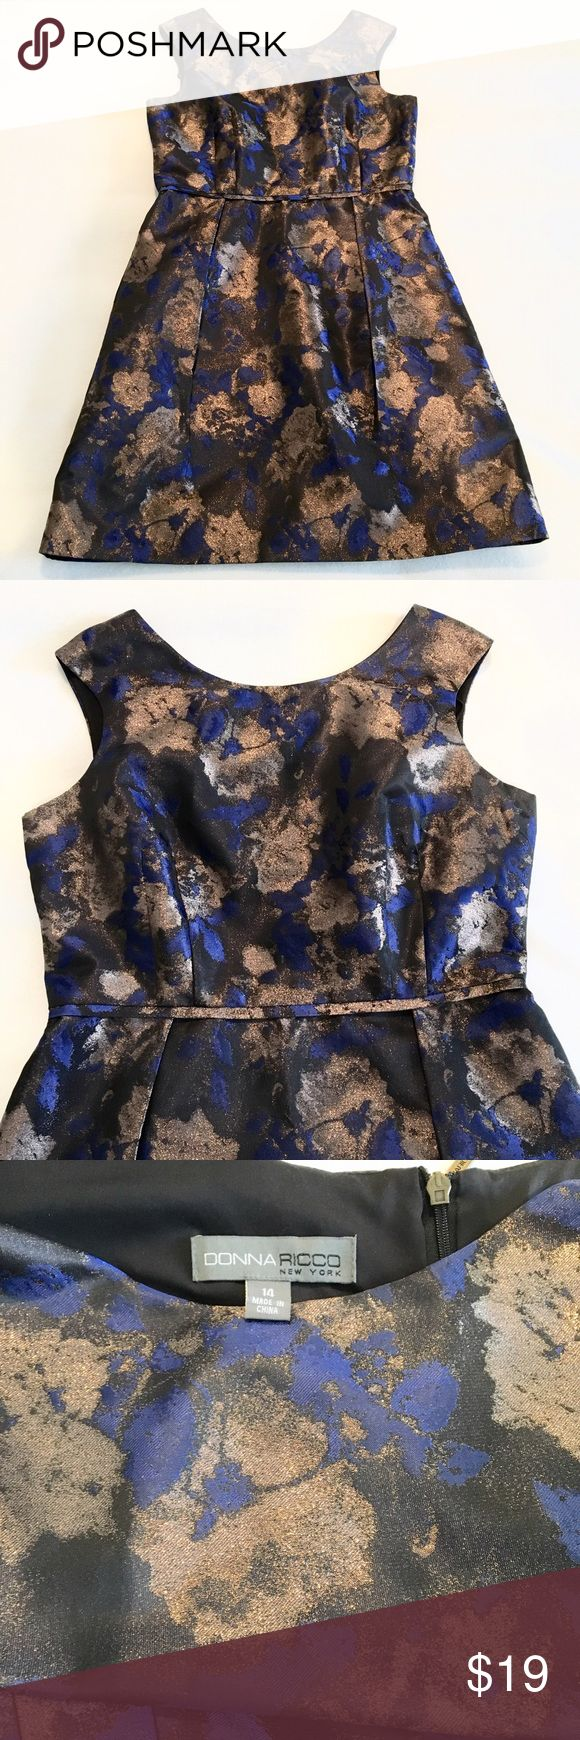 Gold & Blue Floral Dress Blue, black and metallic gold a-line floral dress by Donna Ricco.  Size 14.  Excellent condition! Donna Ricco Dresses Midi